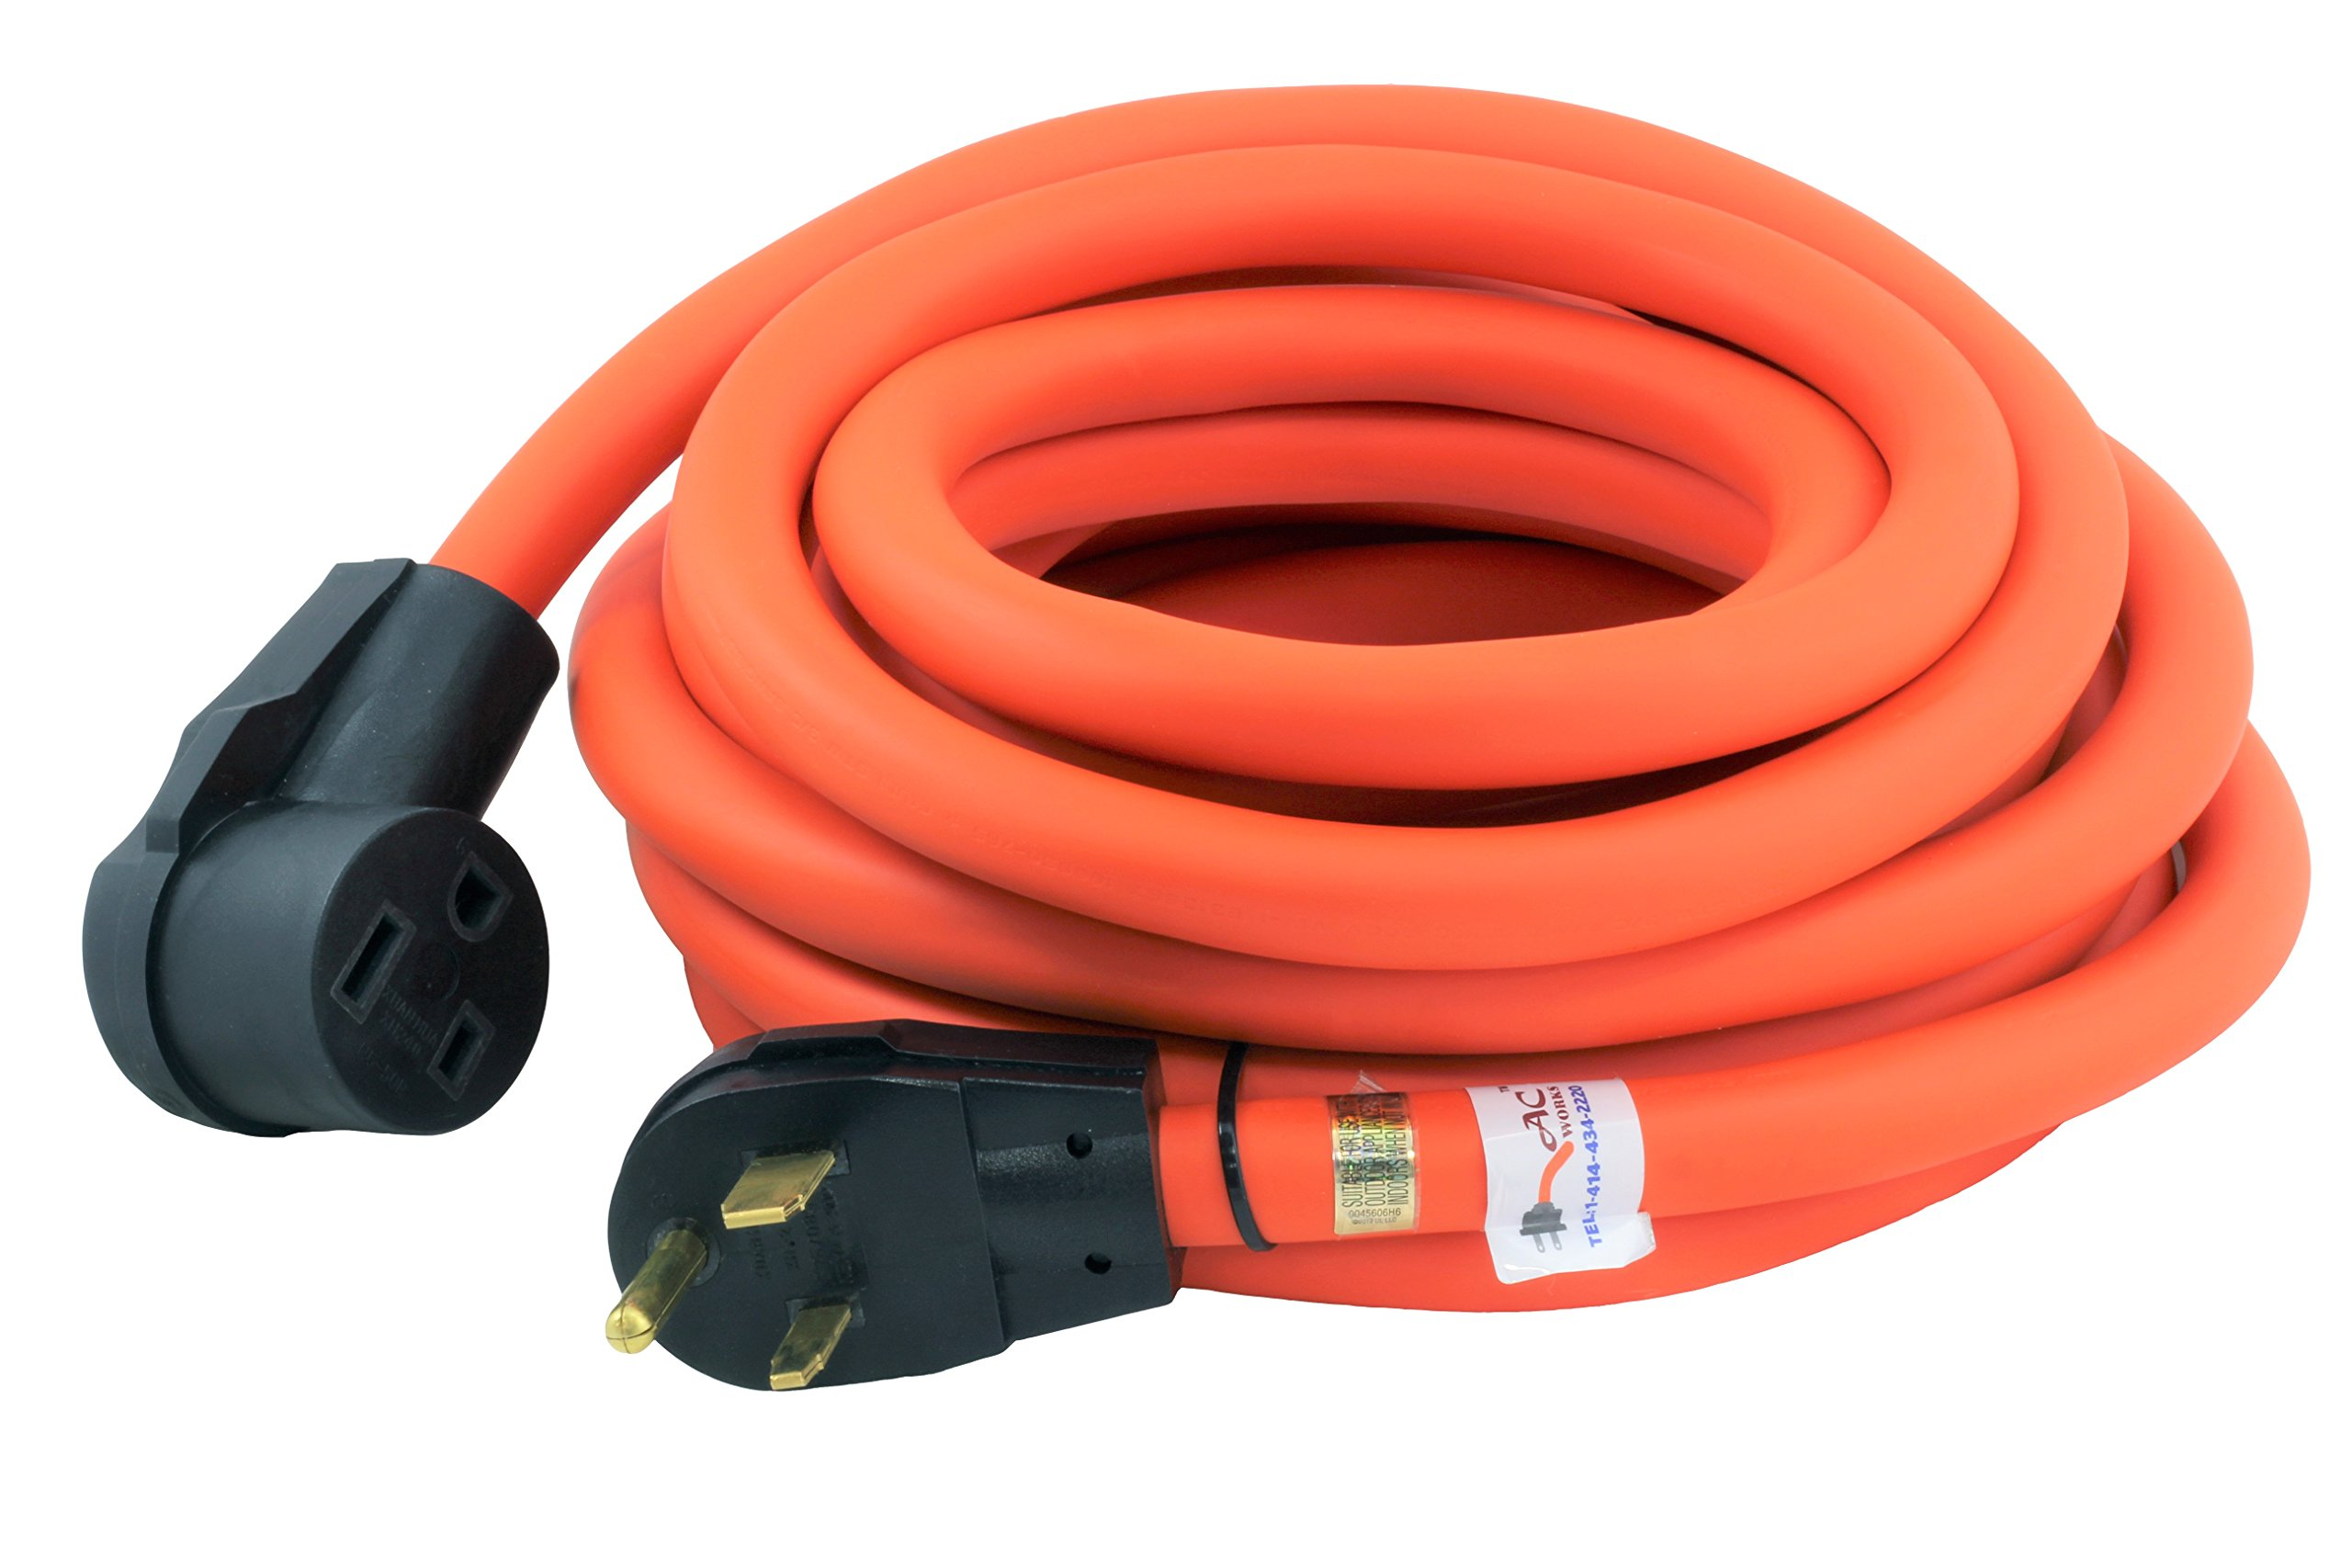 AC WORKS STW 8/3 6-50 Super Heavy Duty Outdoor Welder Extension Cord (25FT)